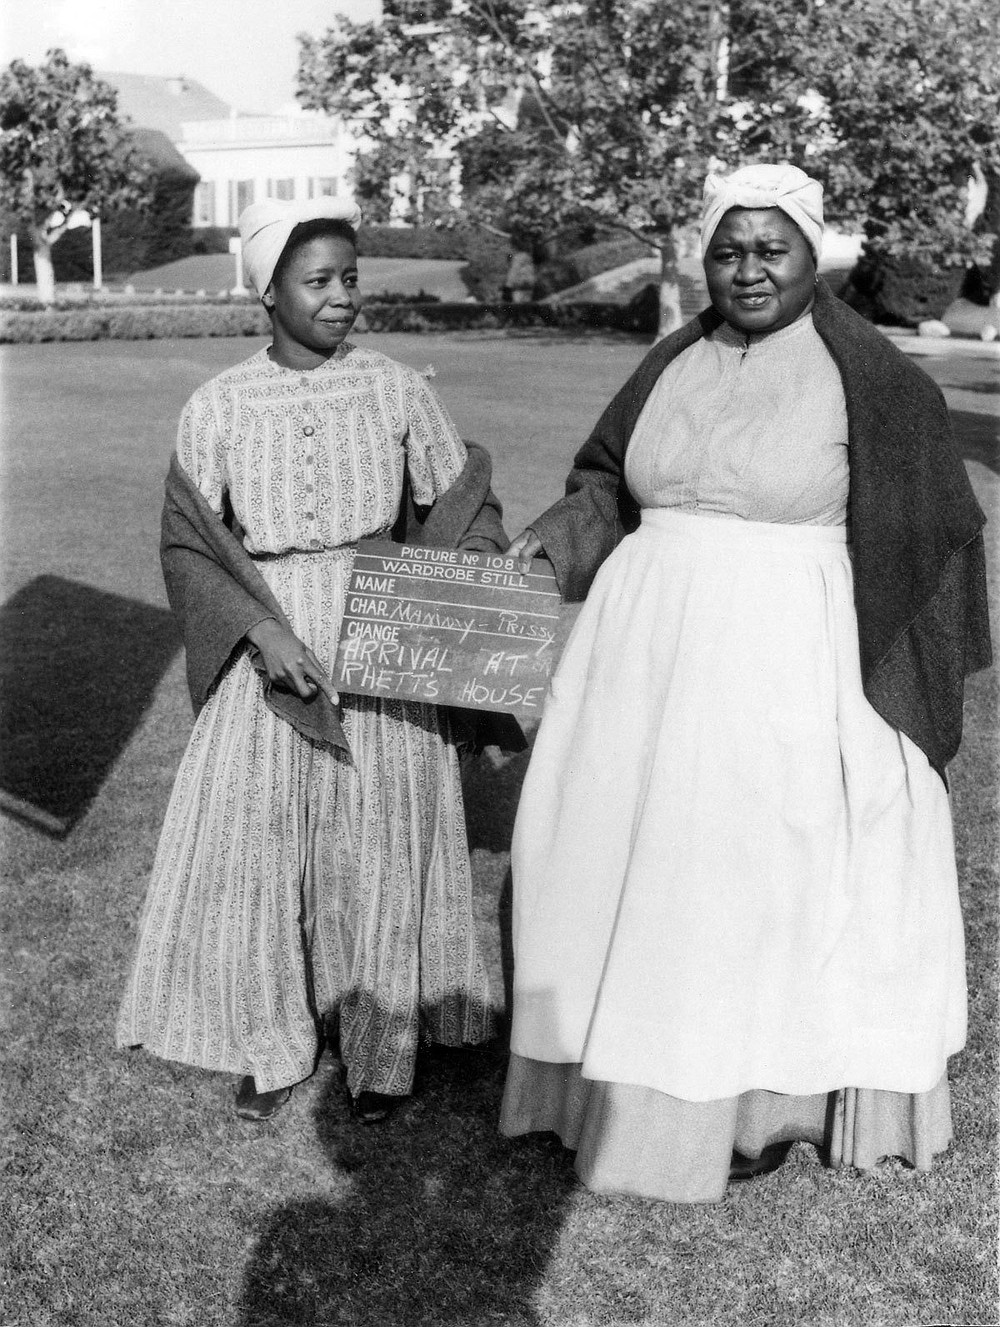 Butterfly McQueen (left) and Hattie McDaniel in a behind-the-scenes production still from Gone With the Wind.